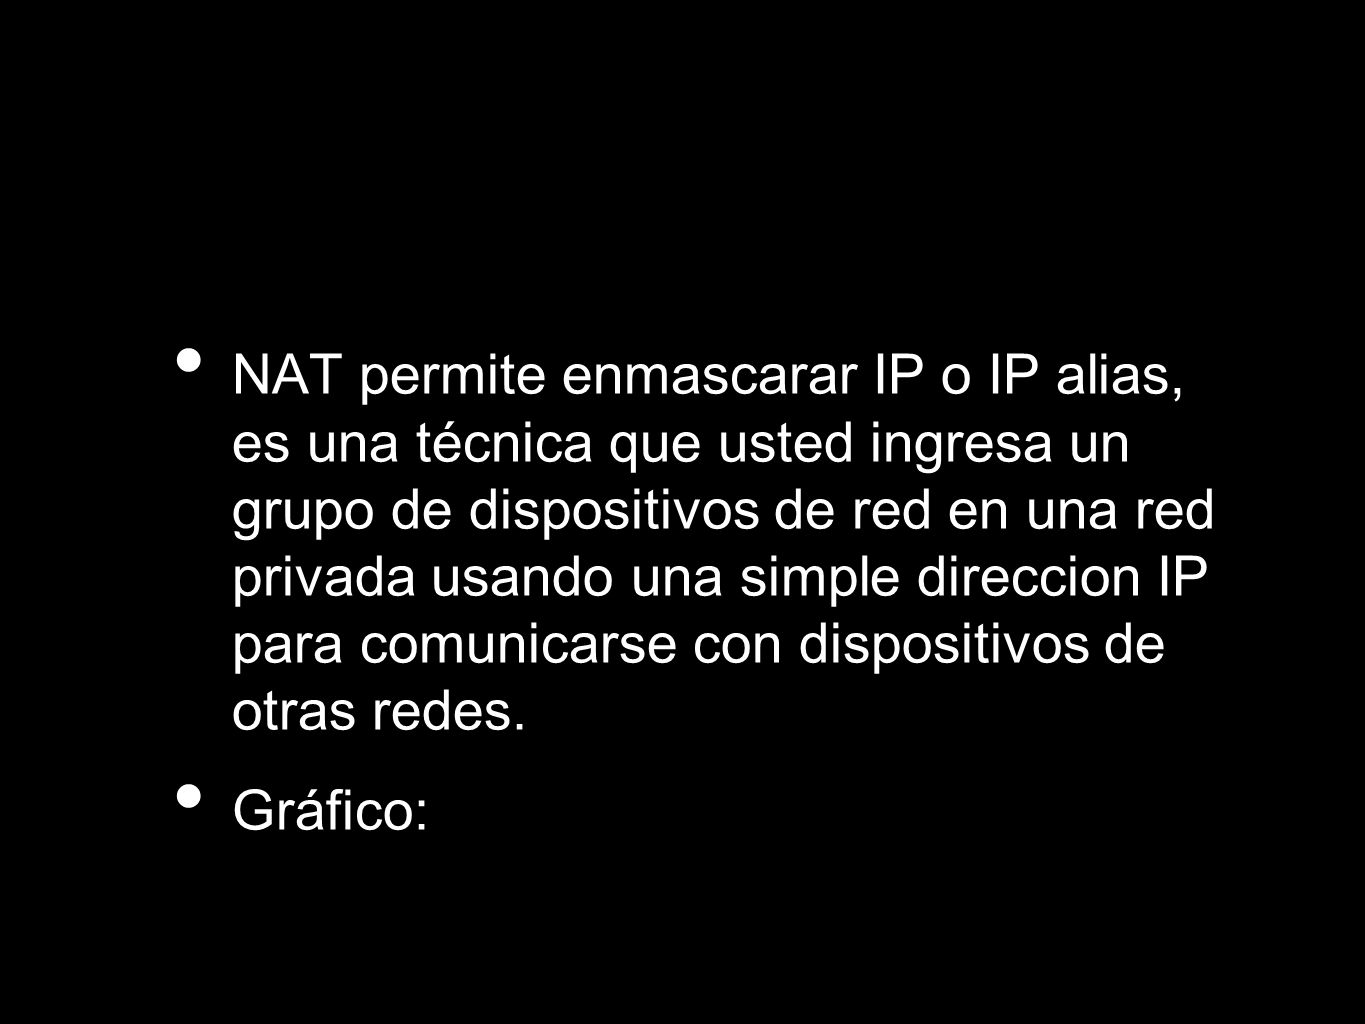 NAT permite enmascarar IP o IP alias, es una técnica que usted ingresa un grupo de dispositivos de red en una red privada usando una simple direccion IP para comunicarse con dispositivos de otras redes.